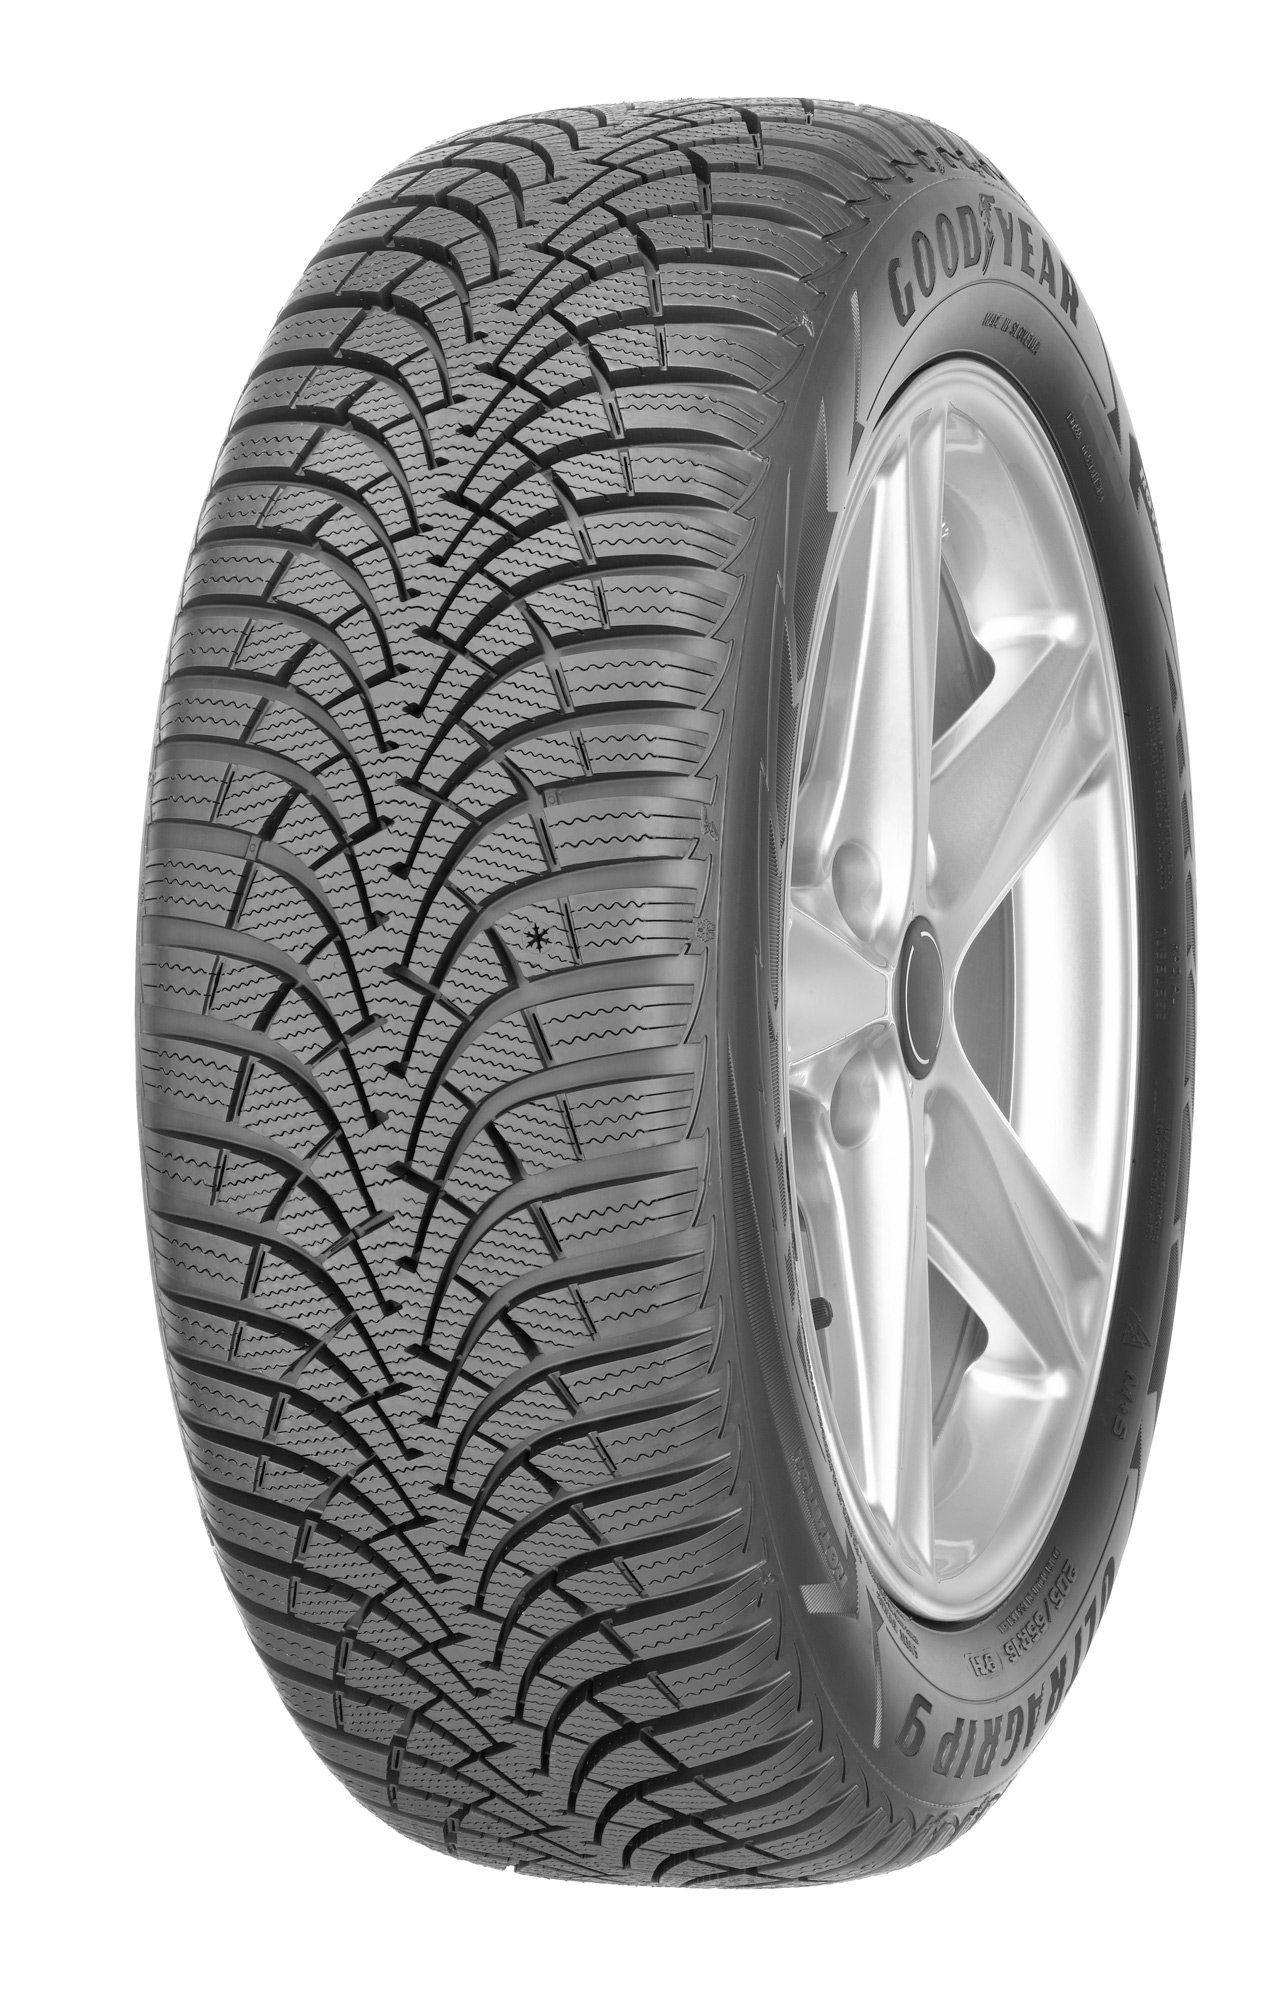 Pneu GOODYEAR Ultra Grip 9 195/55R16 87 T